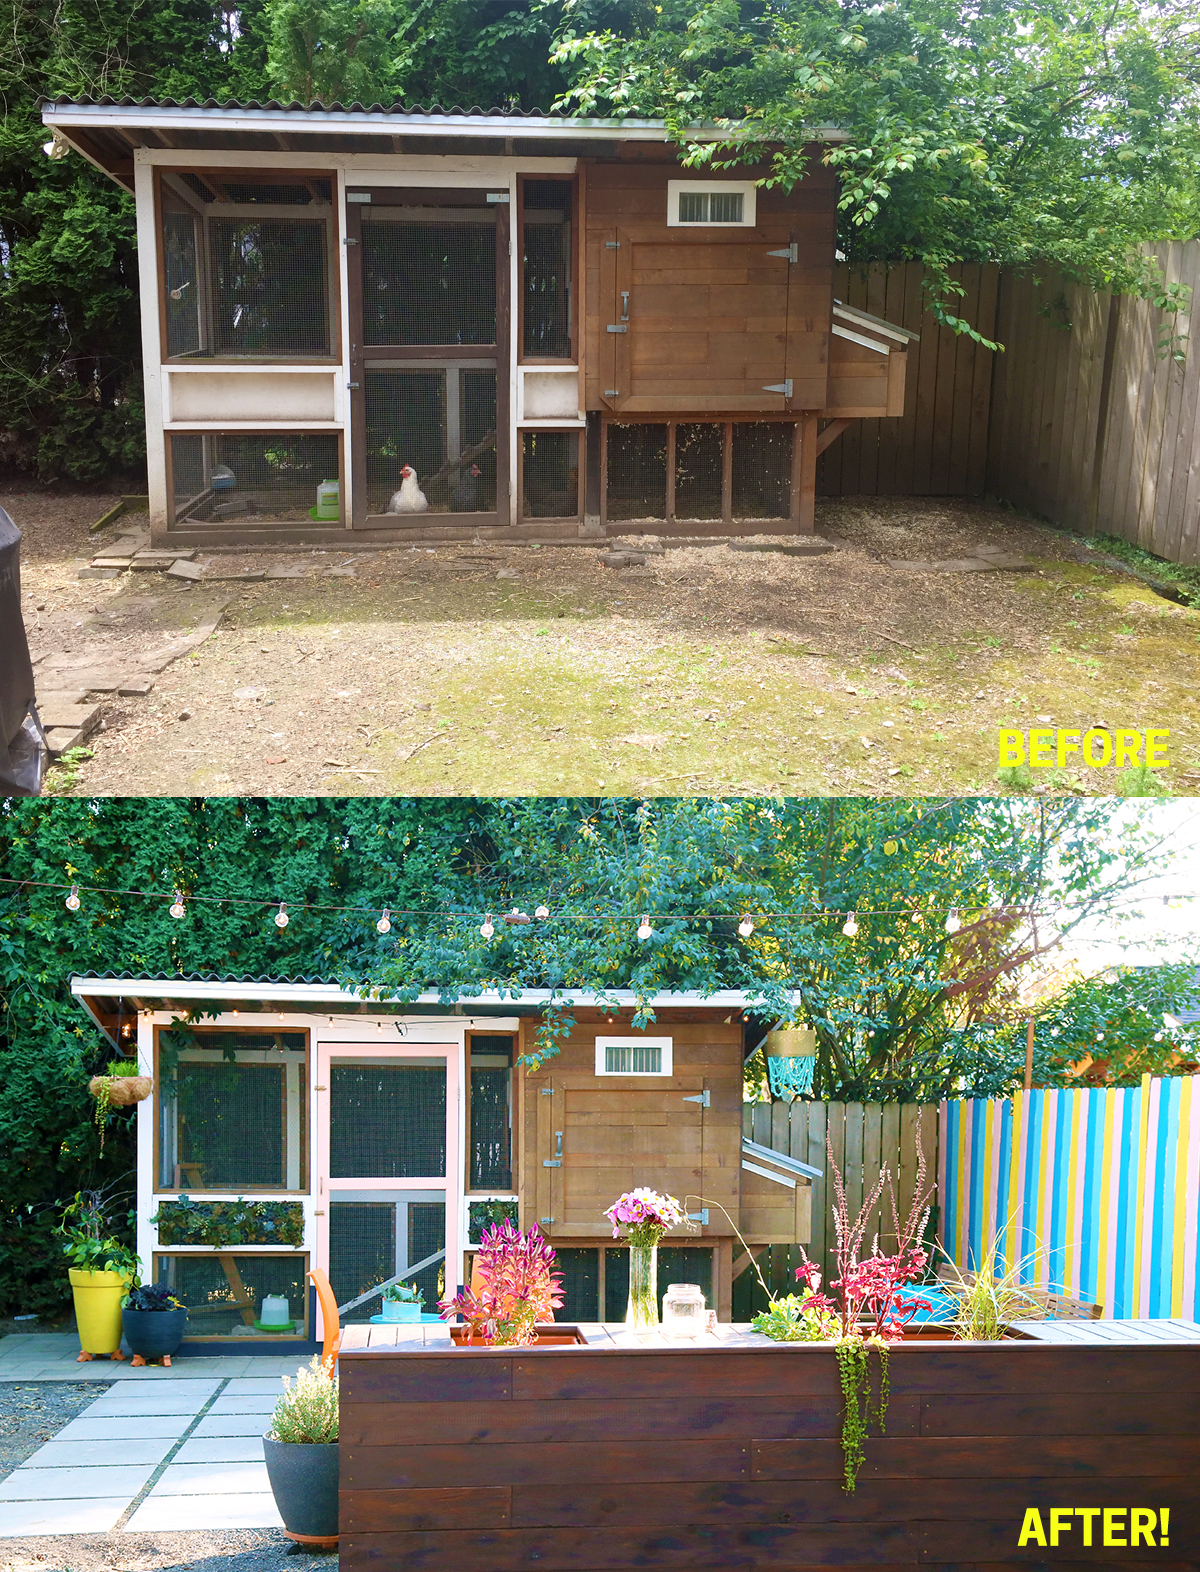 Our Colorful Small Space Patio Makeover: with Before and After photos!